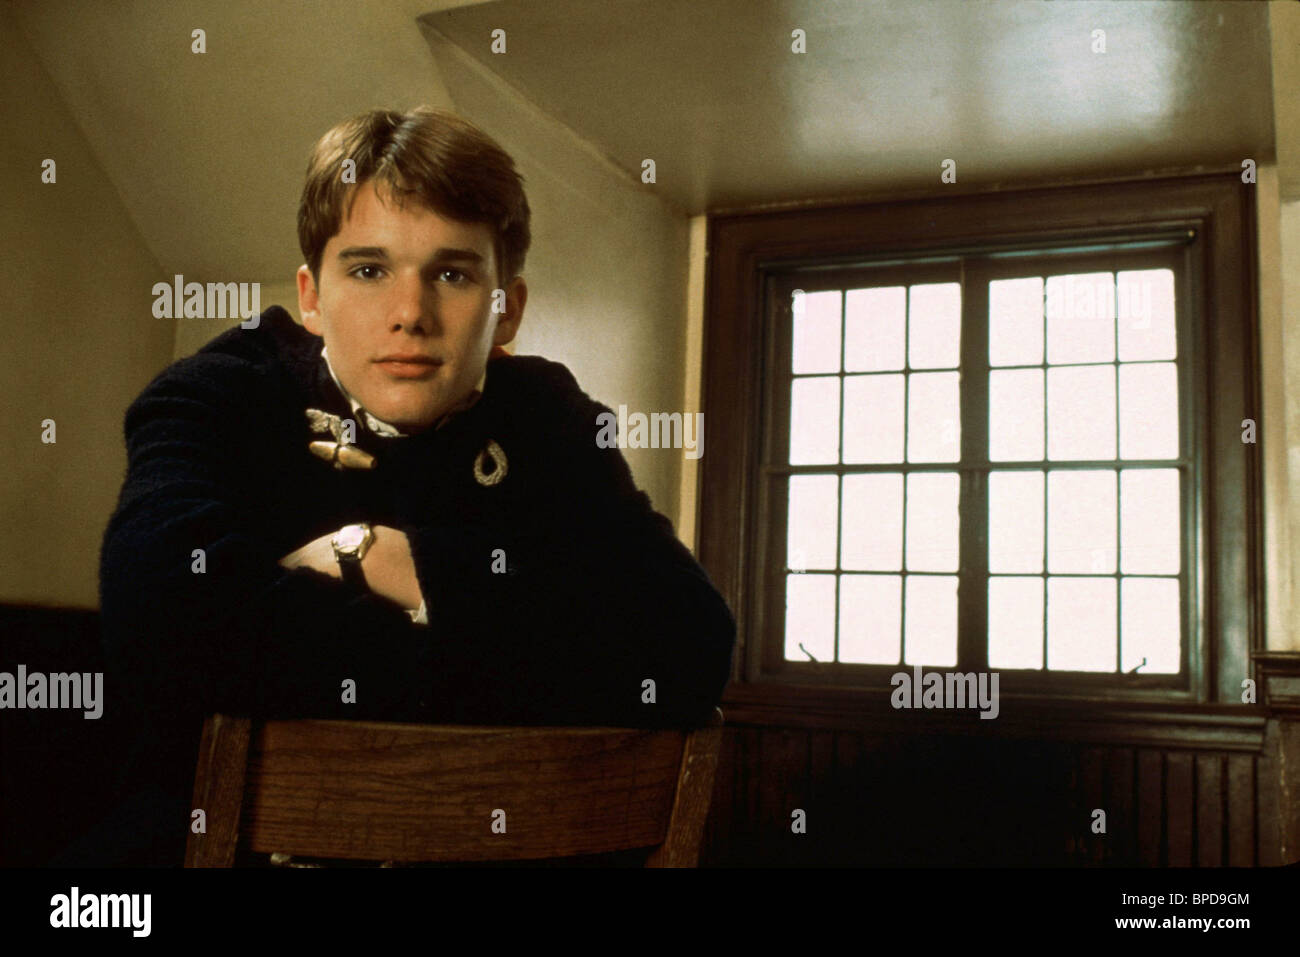 Ethan Hawke Dead Poets Society 1989 Stock Photo Alamy